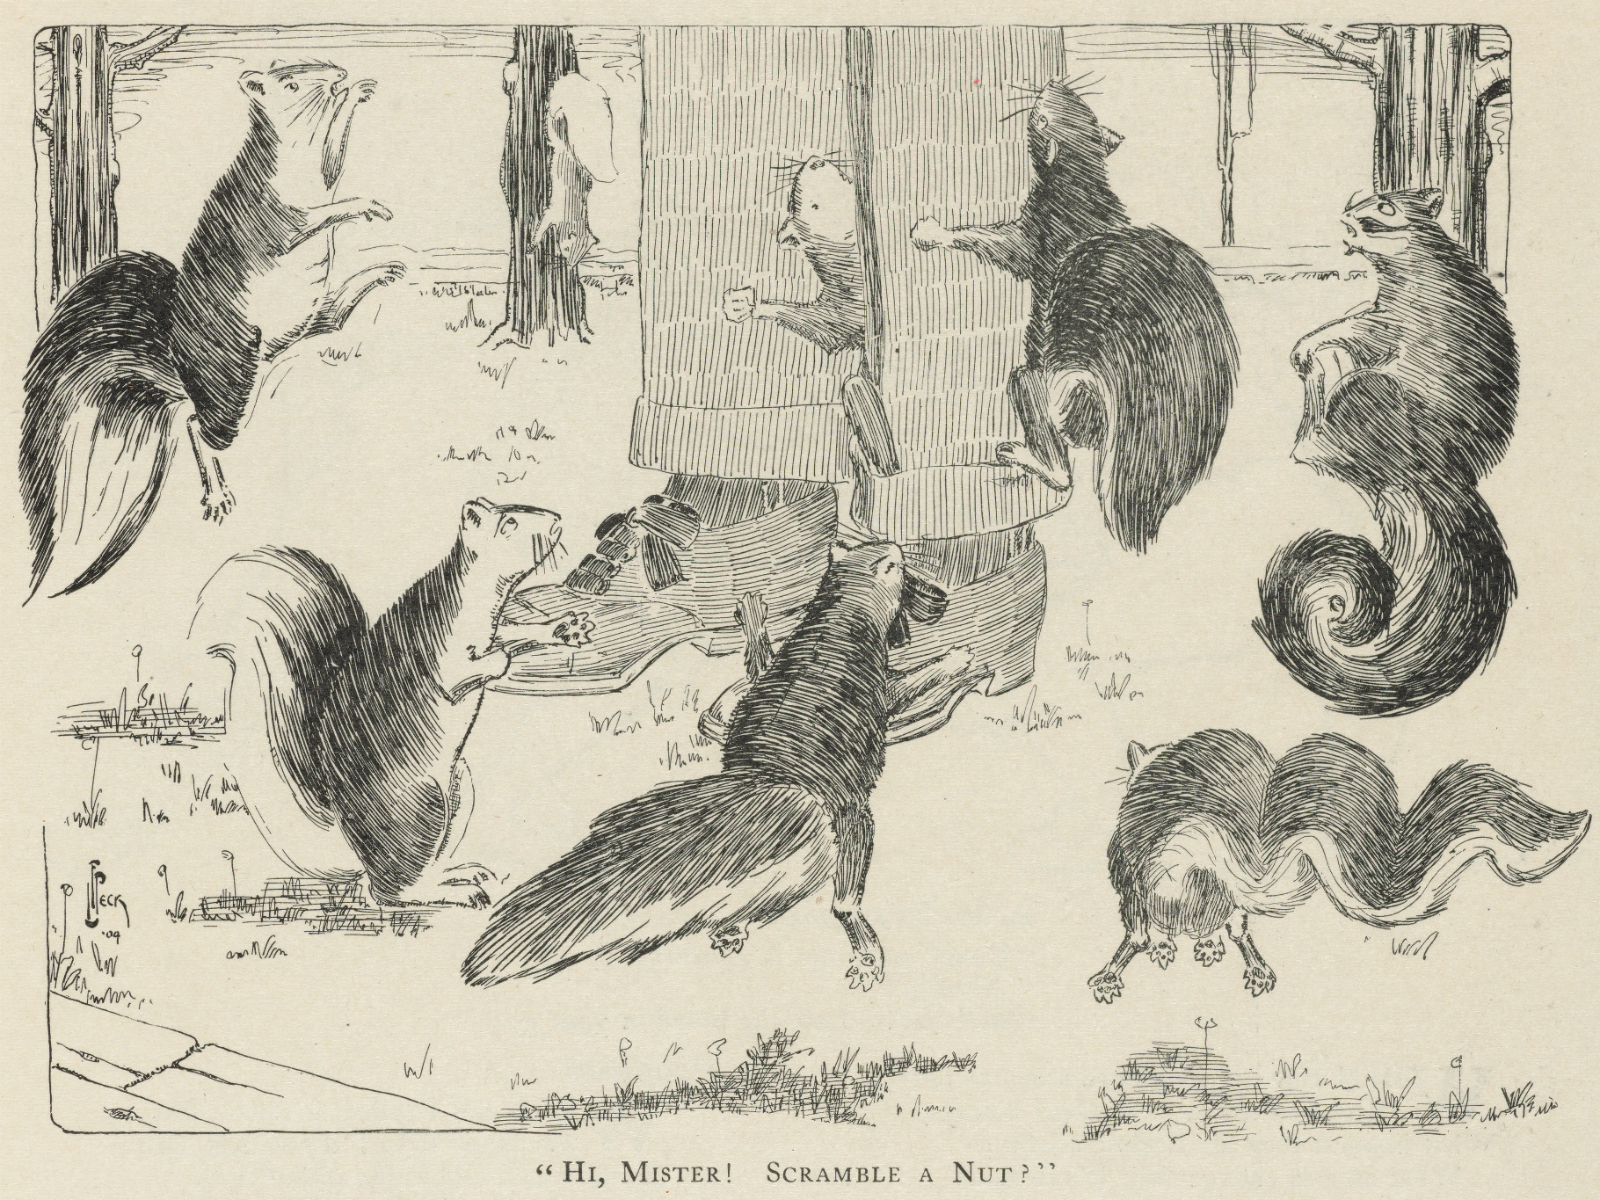 A 1903 cartoon from the Harvard Lampoon speaks to the ubiquity of squirrels in Boston. Courtesy of Harvard University Archives